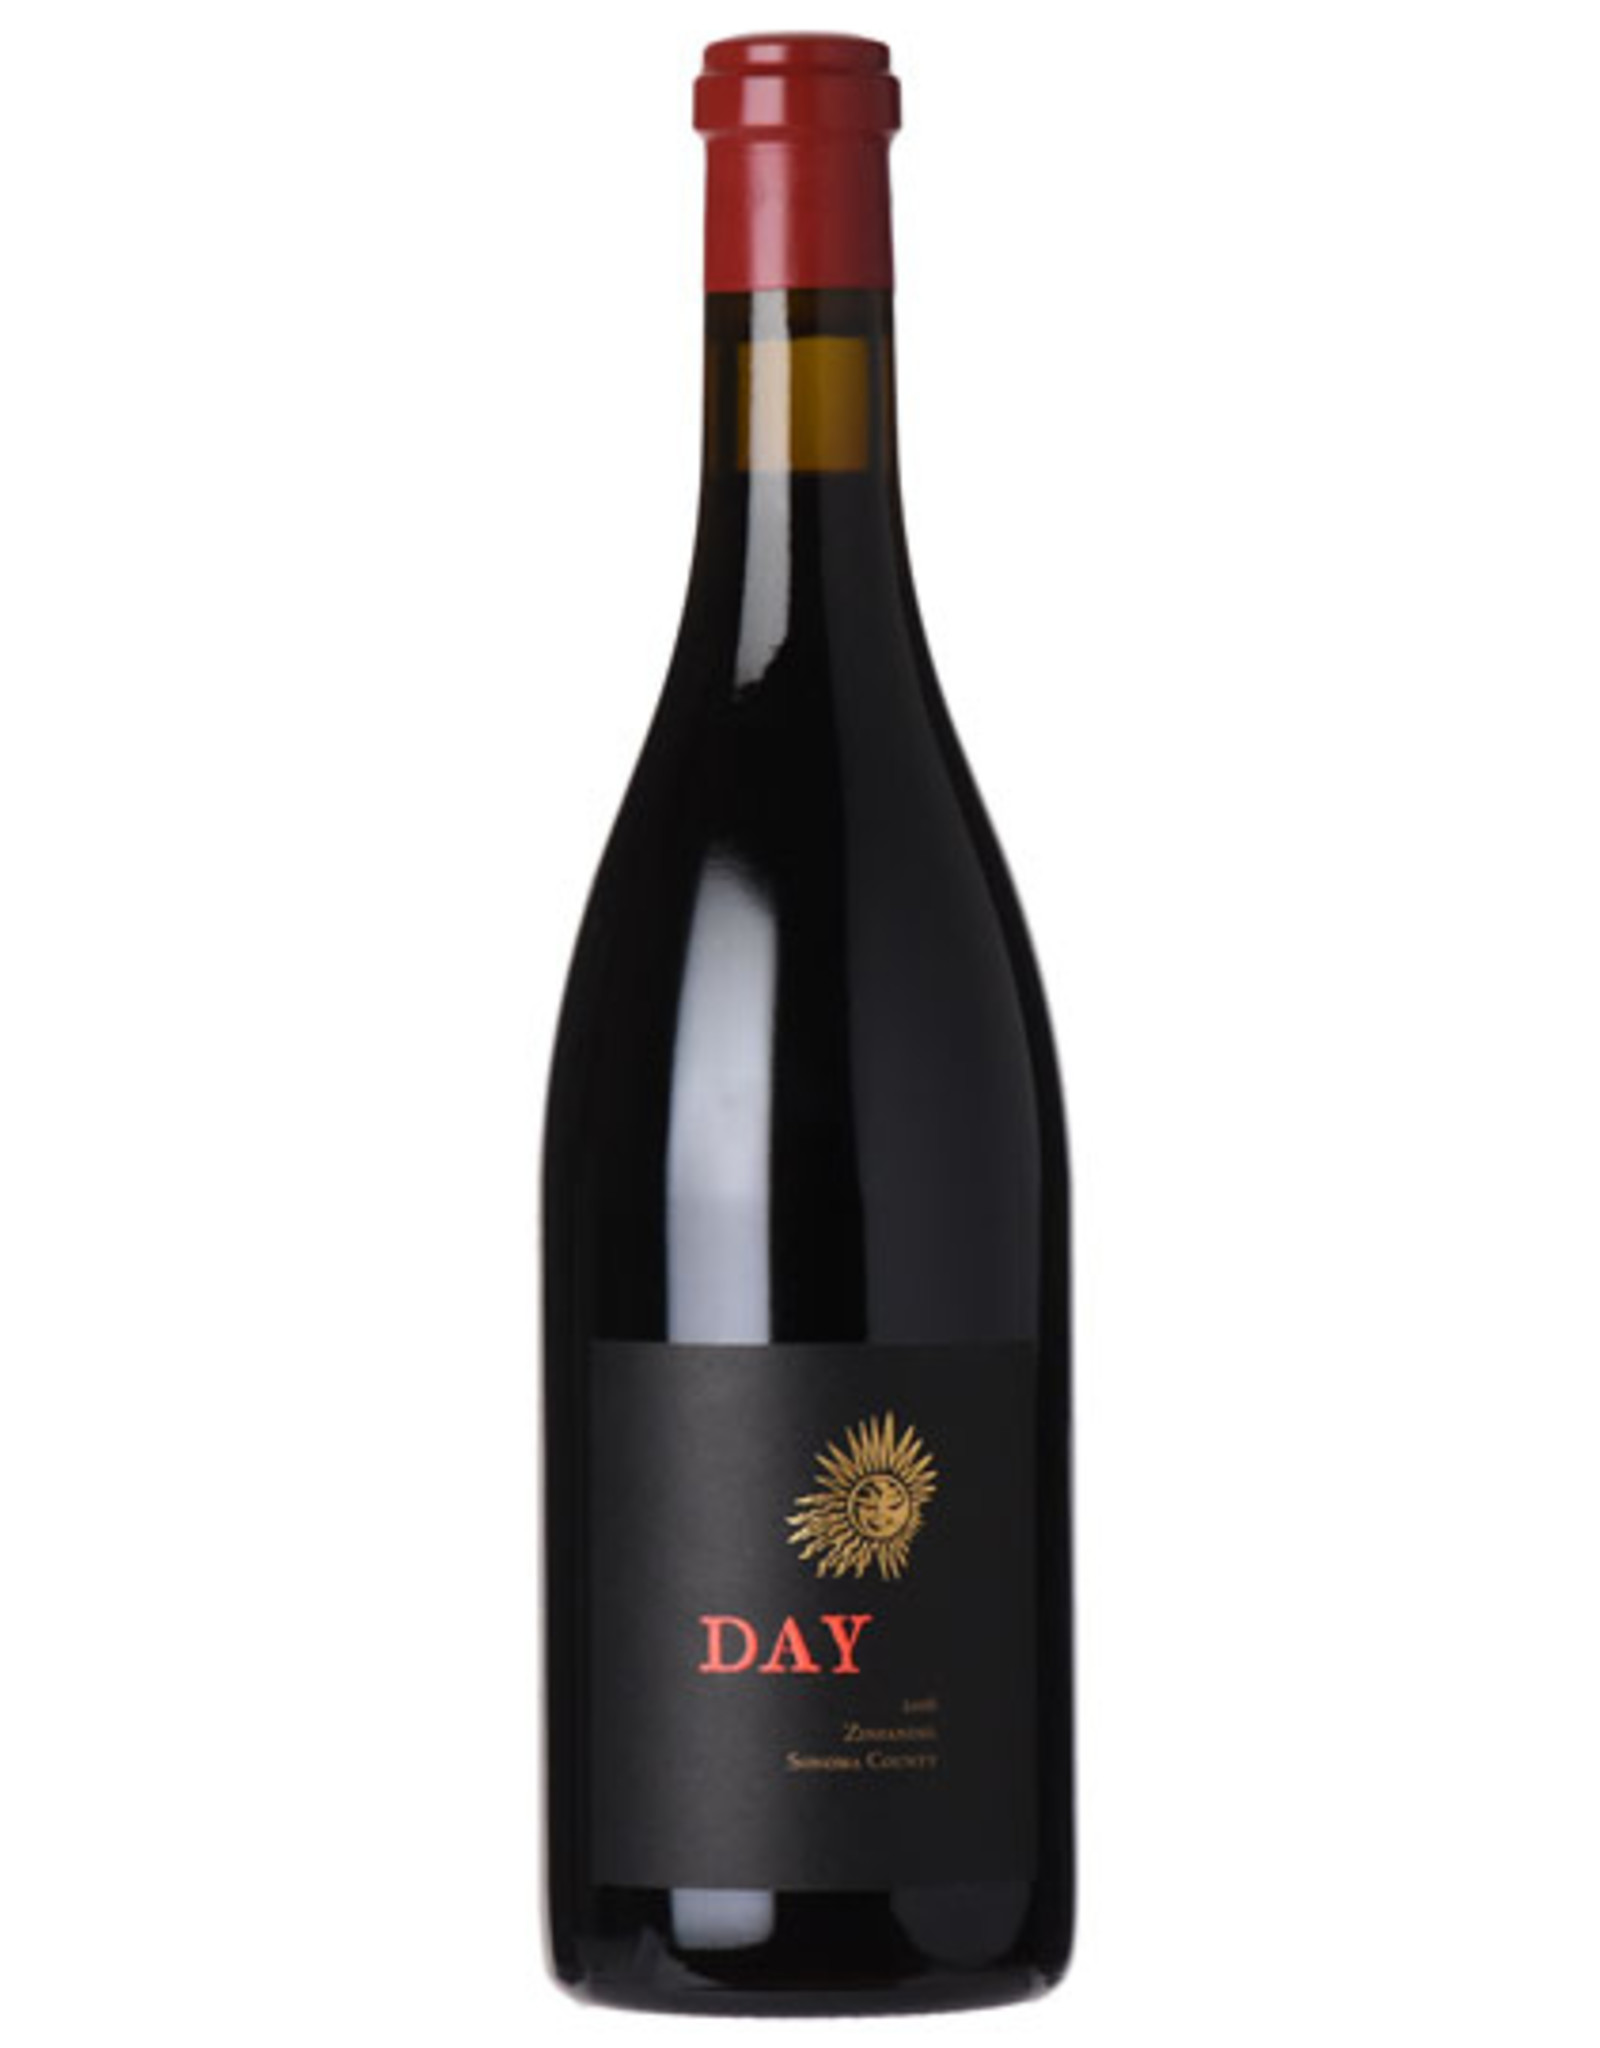 Day Zinfandel by Ehren Jordan